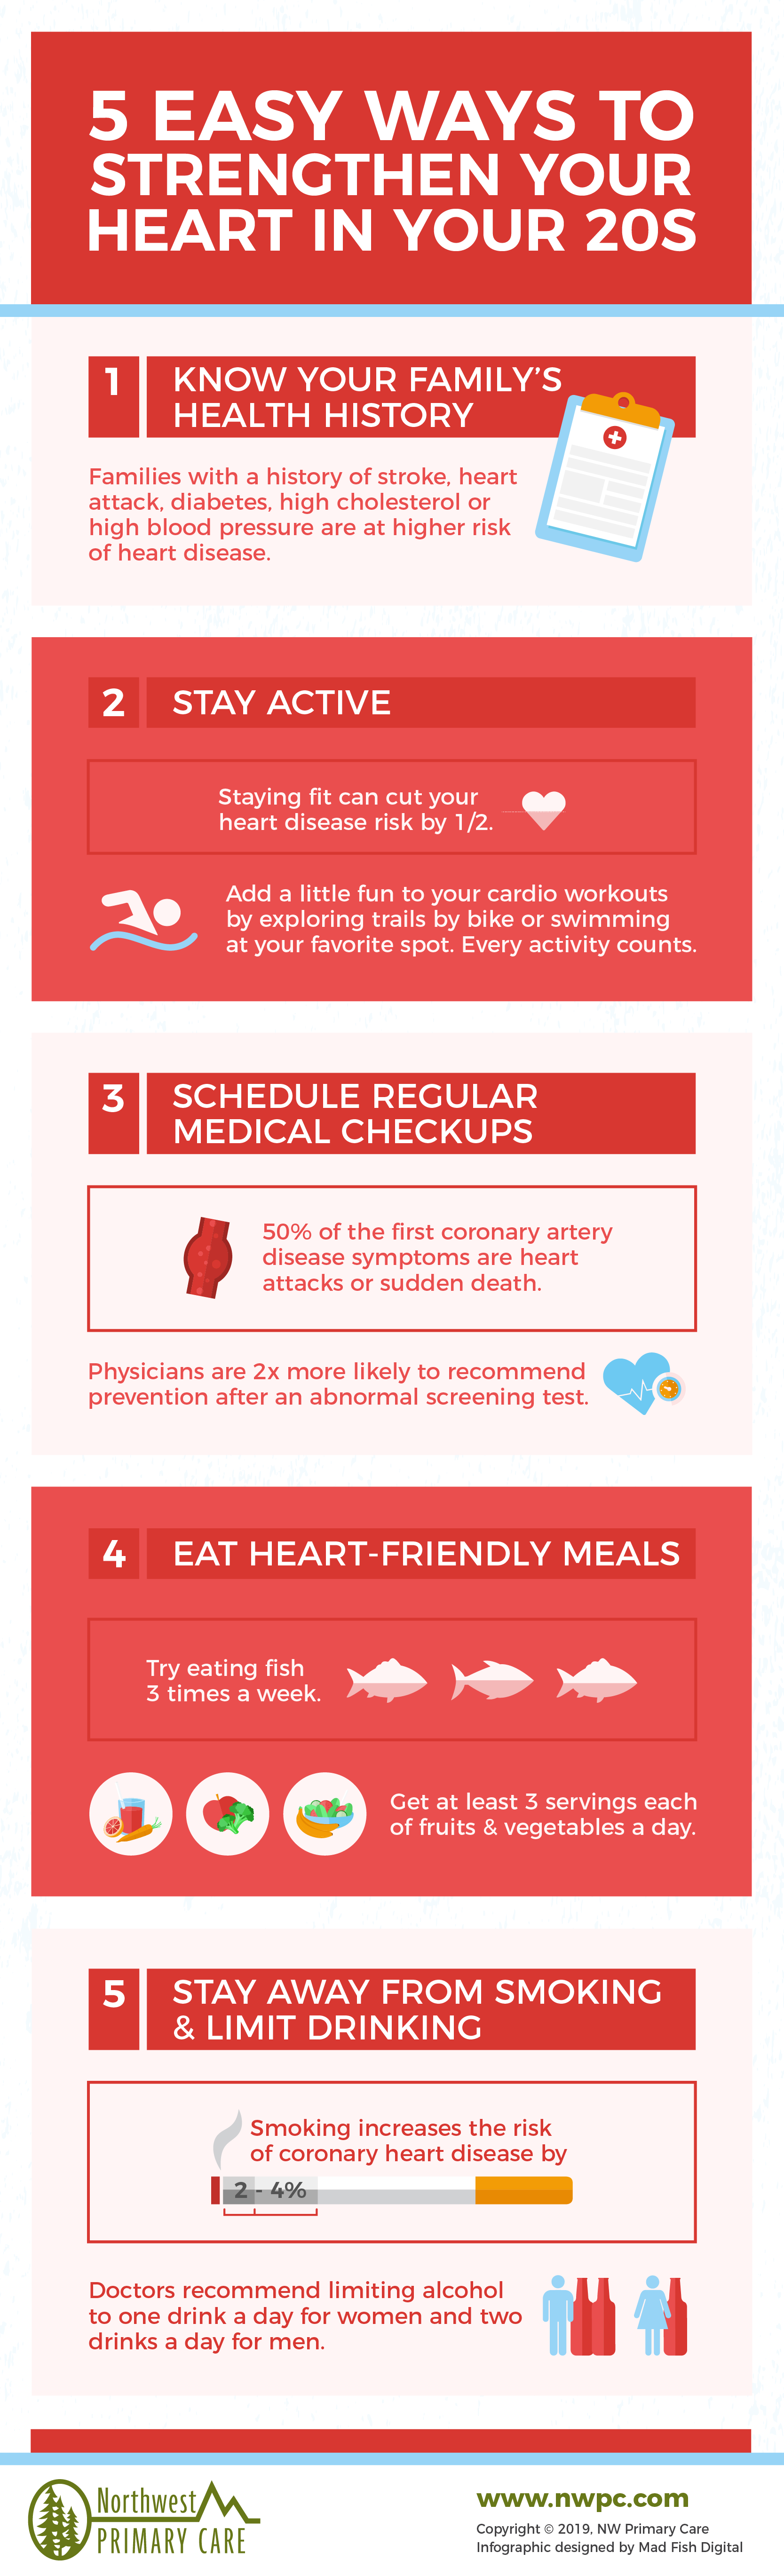 Heart health in your 20s tips infographic